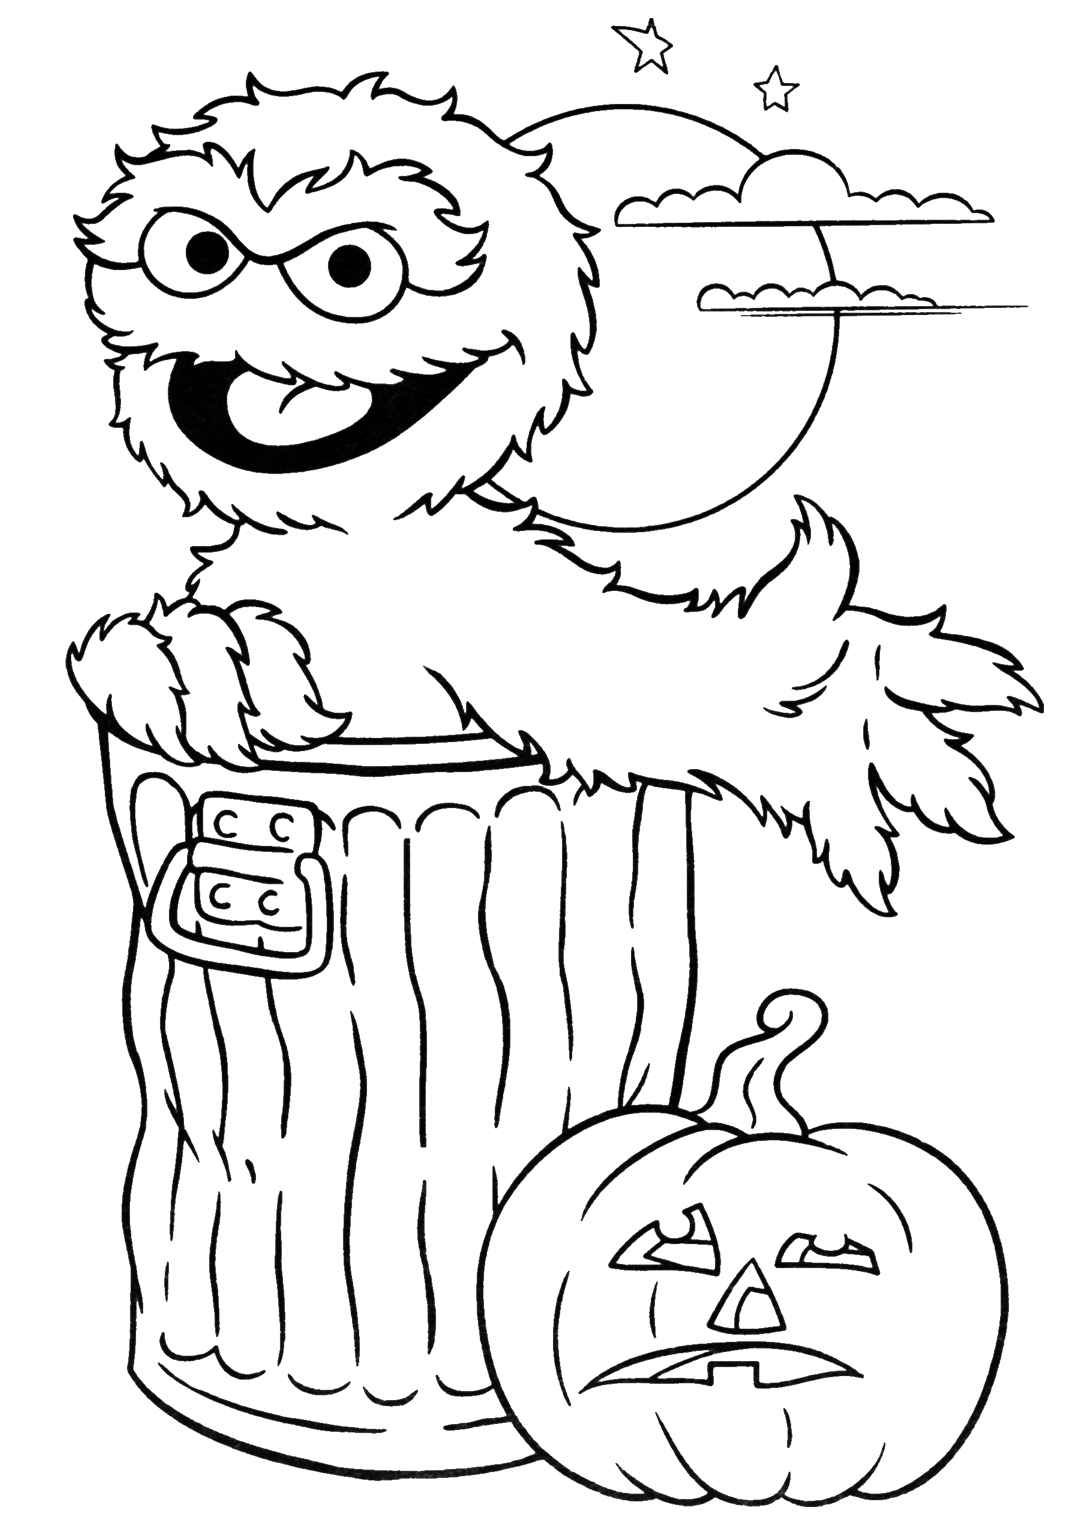 halloween coloring pages, printable, free - photo#42